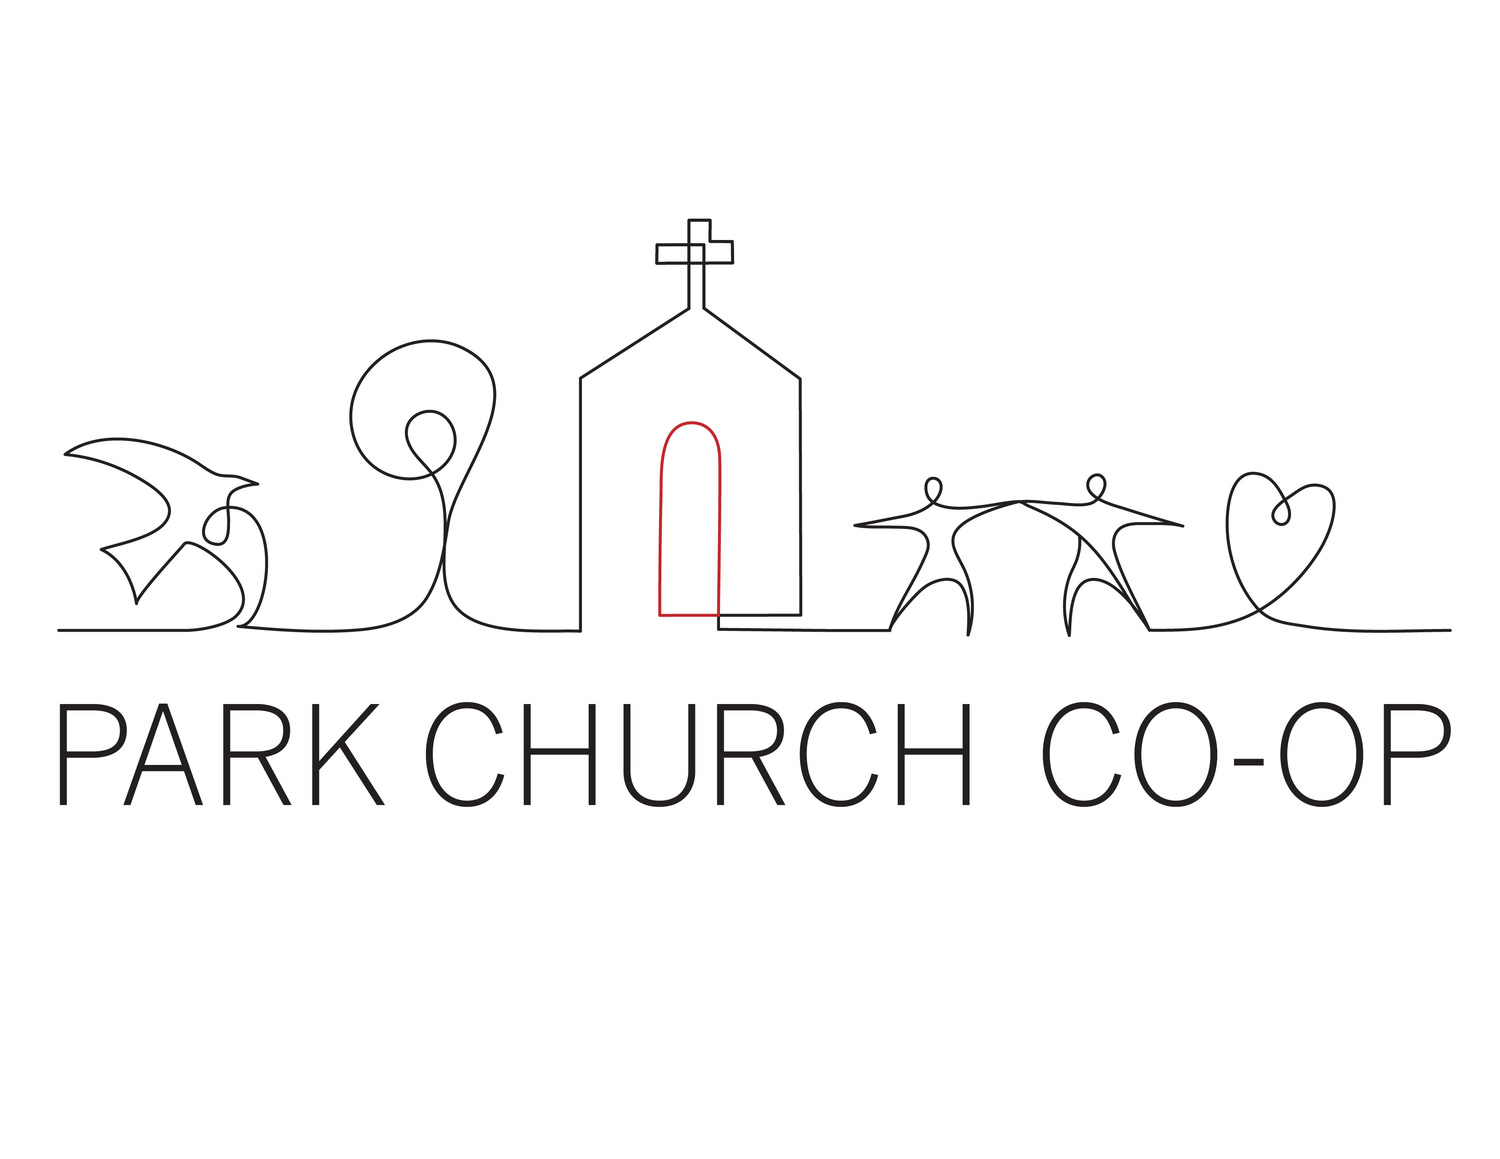 The Park Church Coop